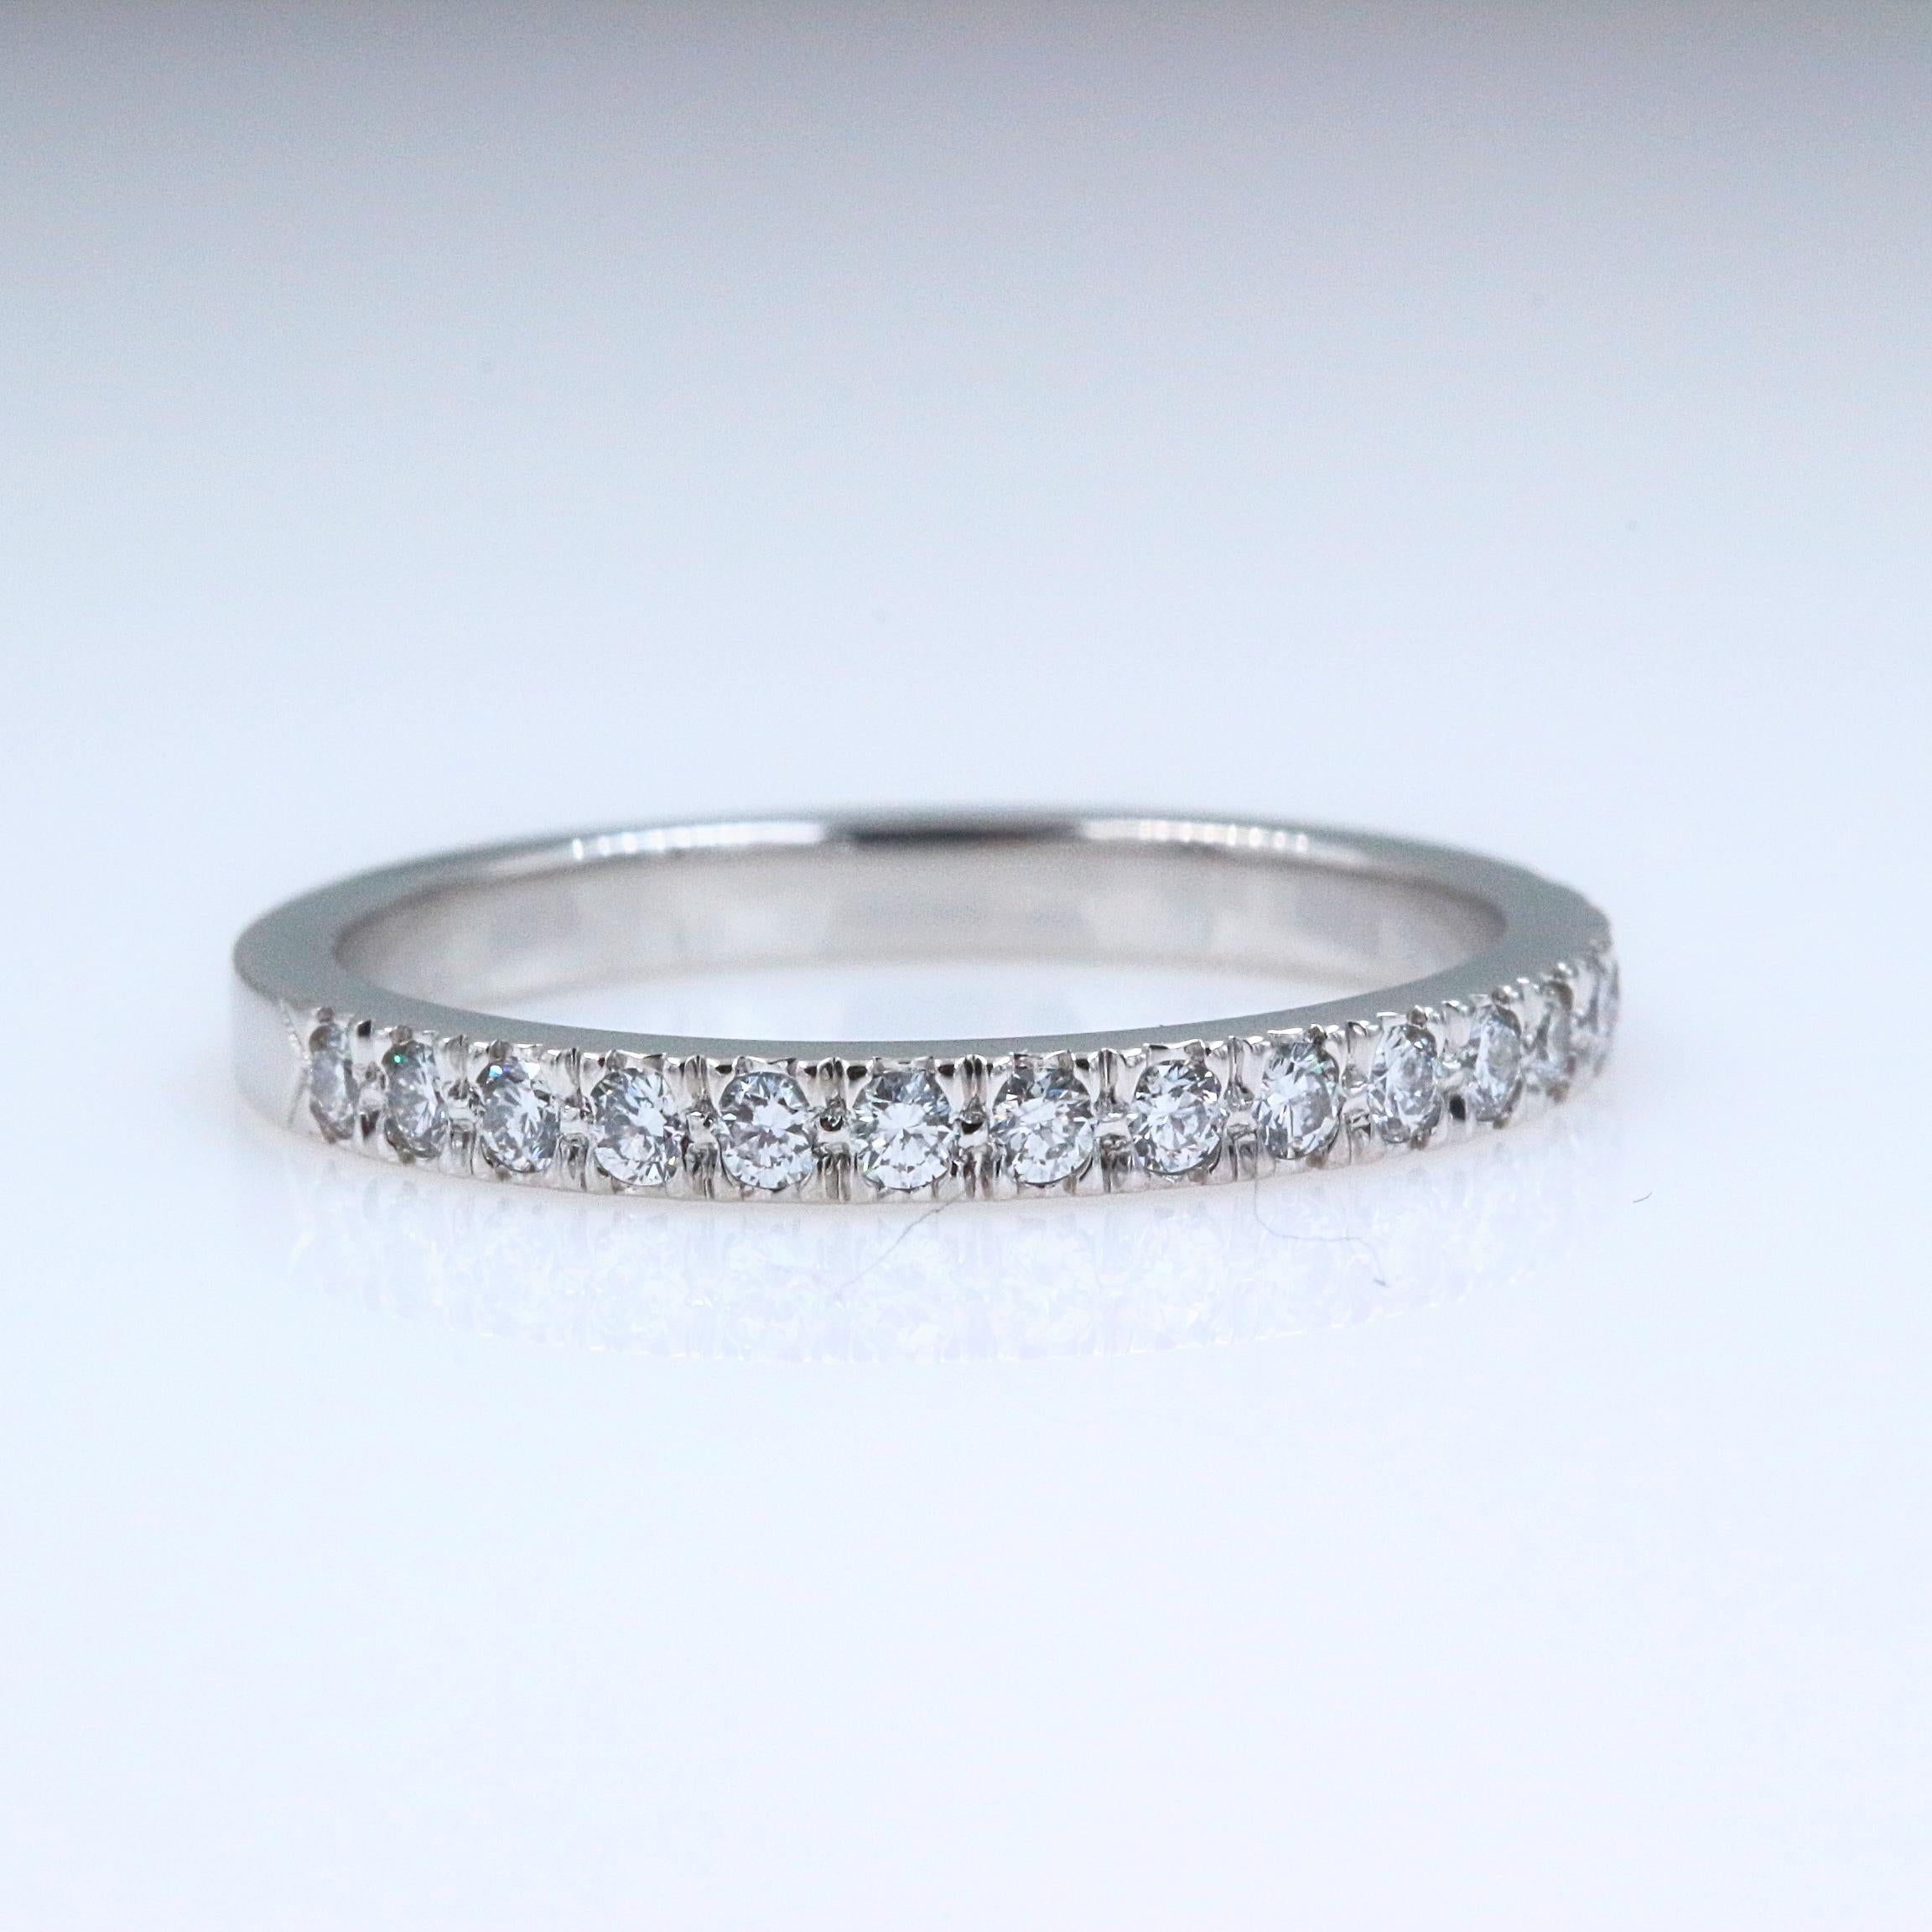 9ac74710a434 Authentic Tiffany and Co. Novo Platinum Diamond Wedding Band Ring 0.36  Carat For Sale at 1stdibs